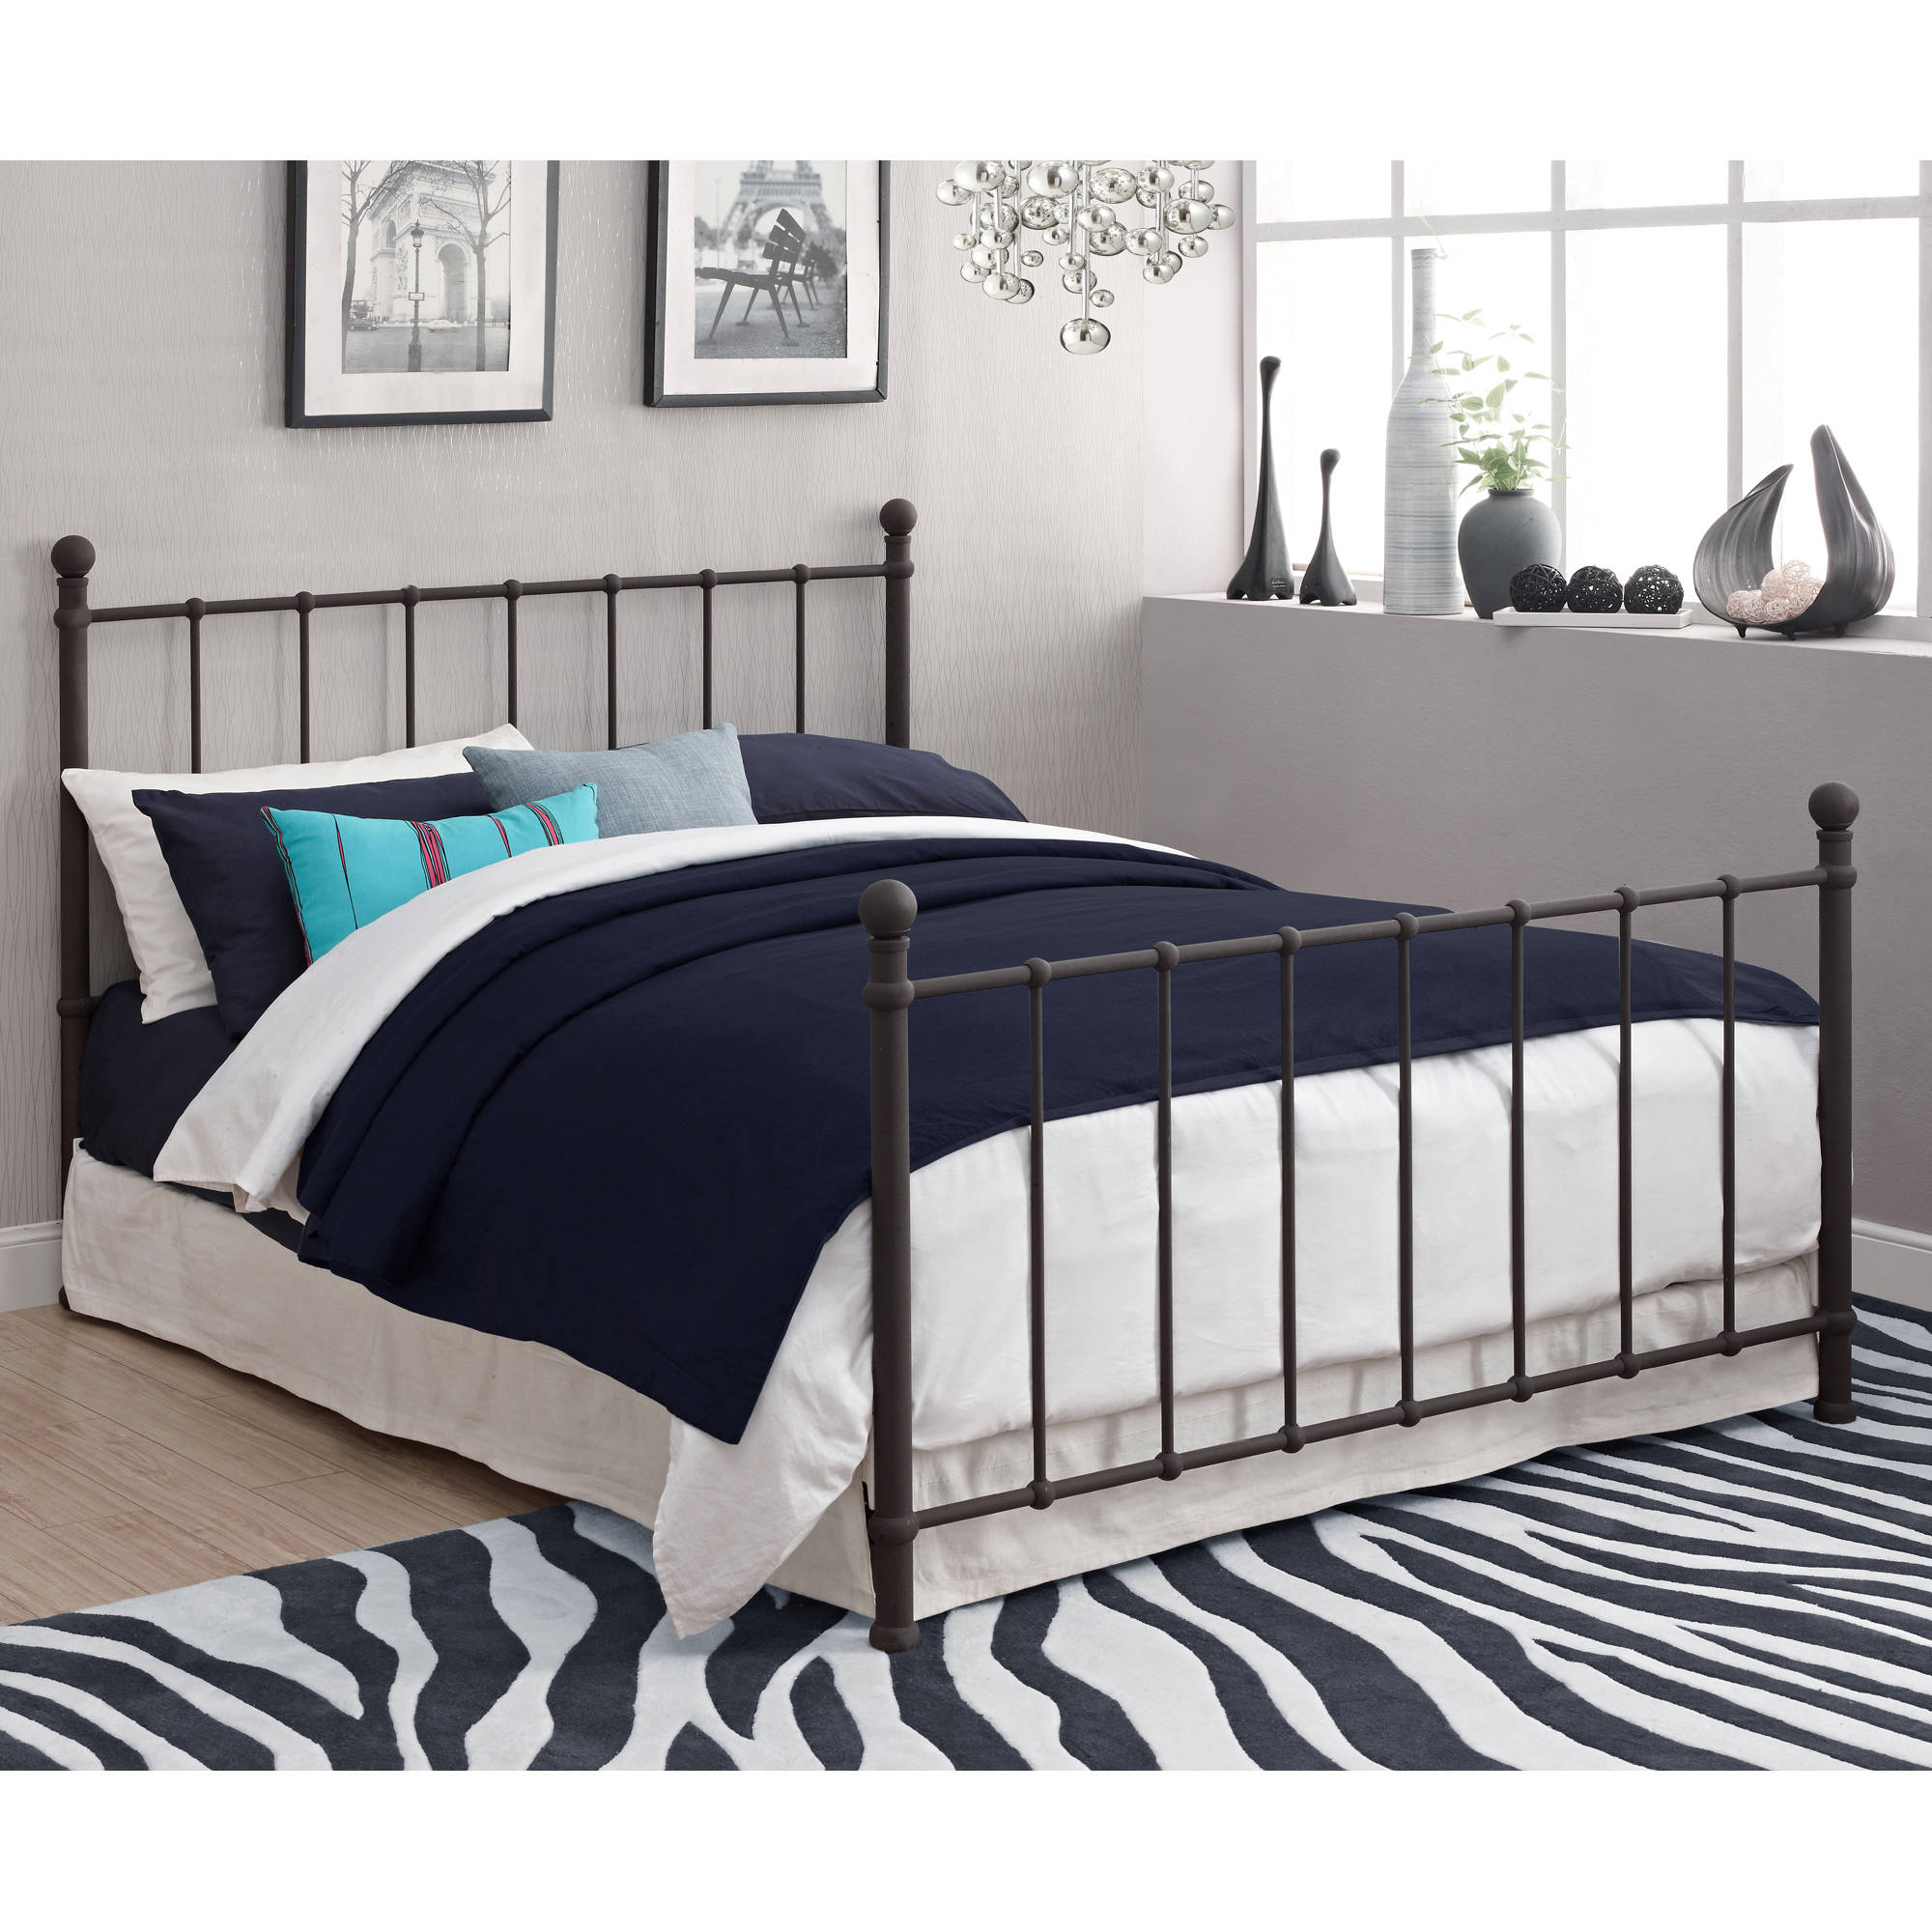 Exceptionnel Better Homes U0026 Gardens Kelsey Metal Bed, Multiple Sizes And Colors